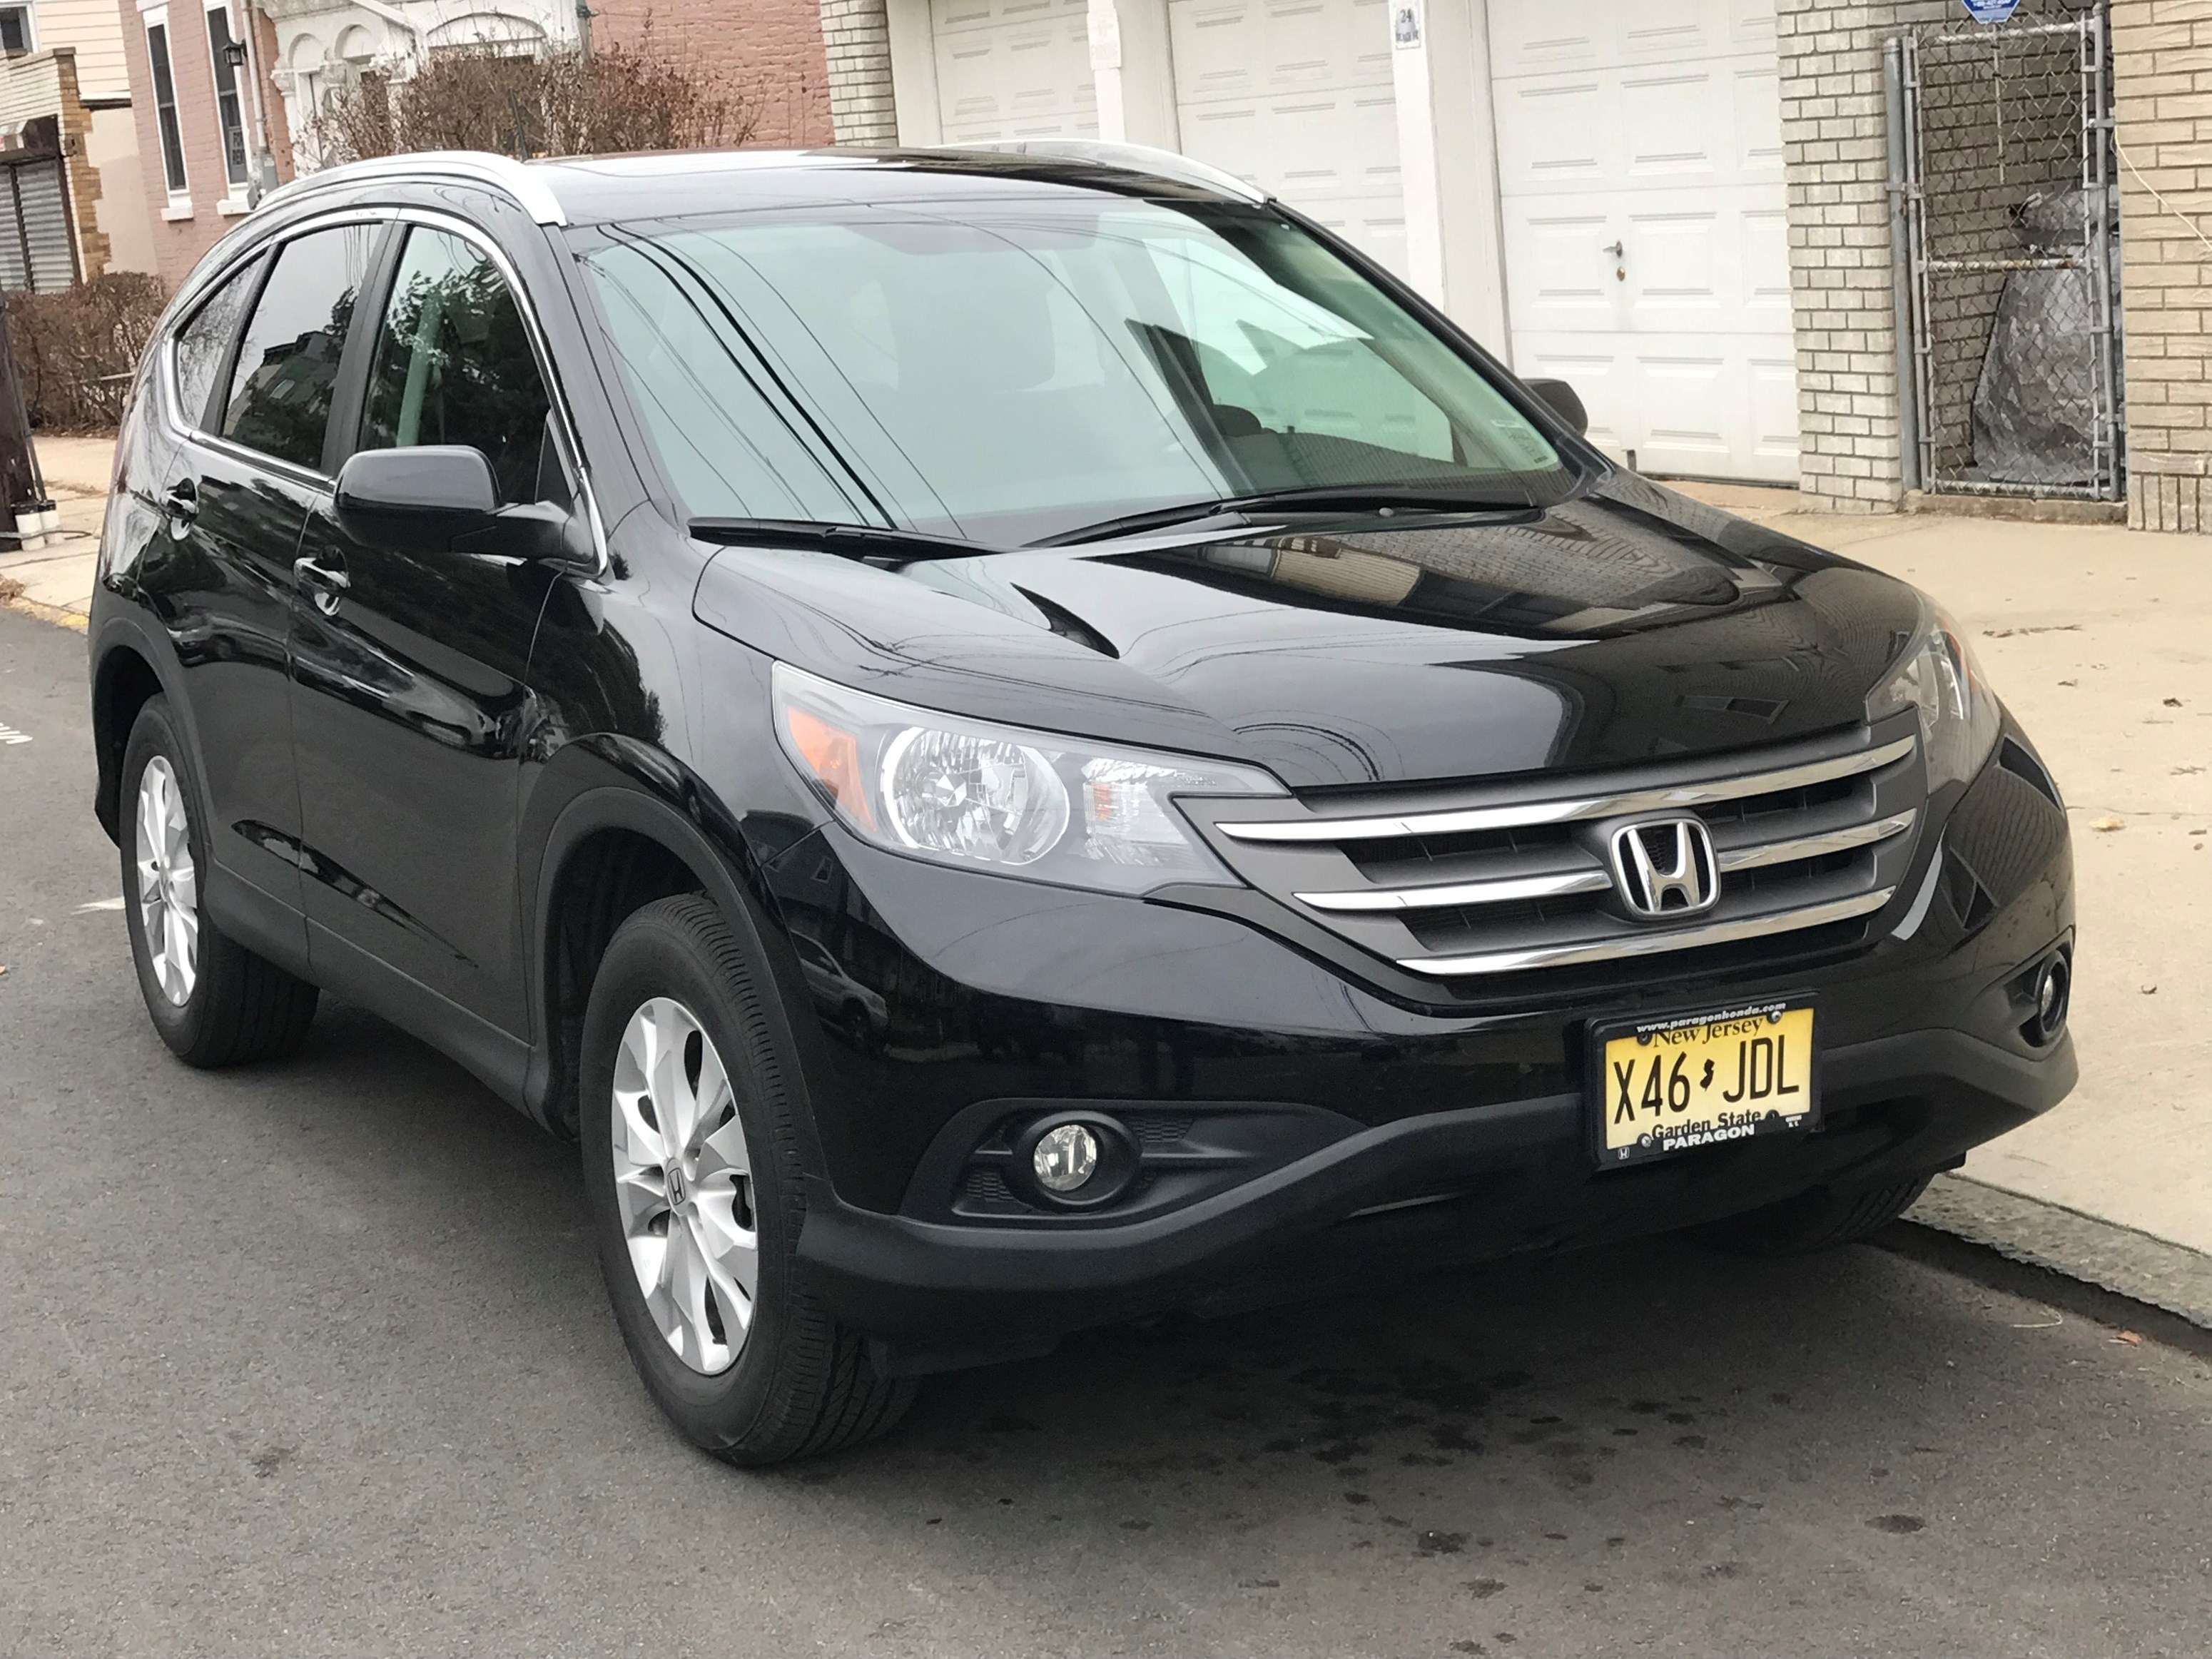 Awesome Deal2014 Black HONDA CRV EX L With Navigation Heated Leather Seats Sunroof No Accident History 266K Miles